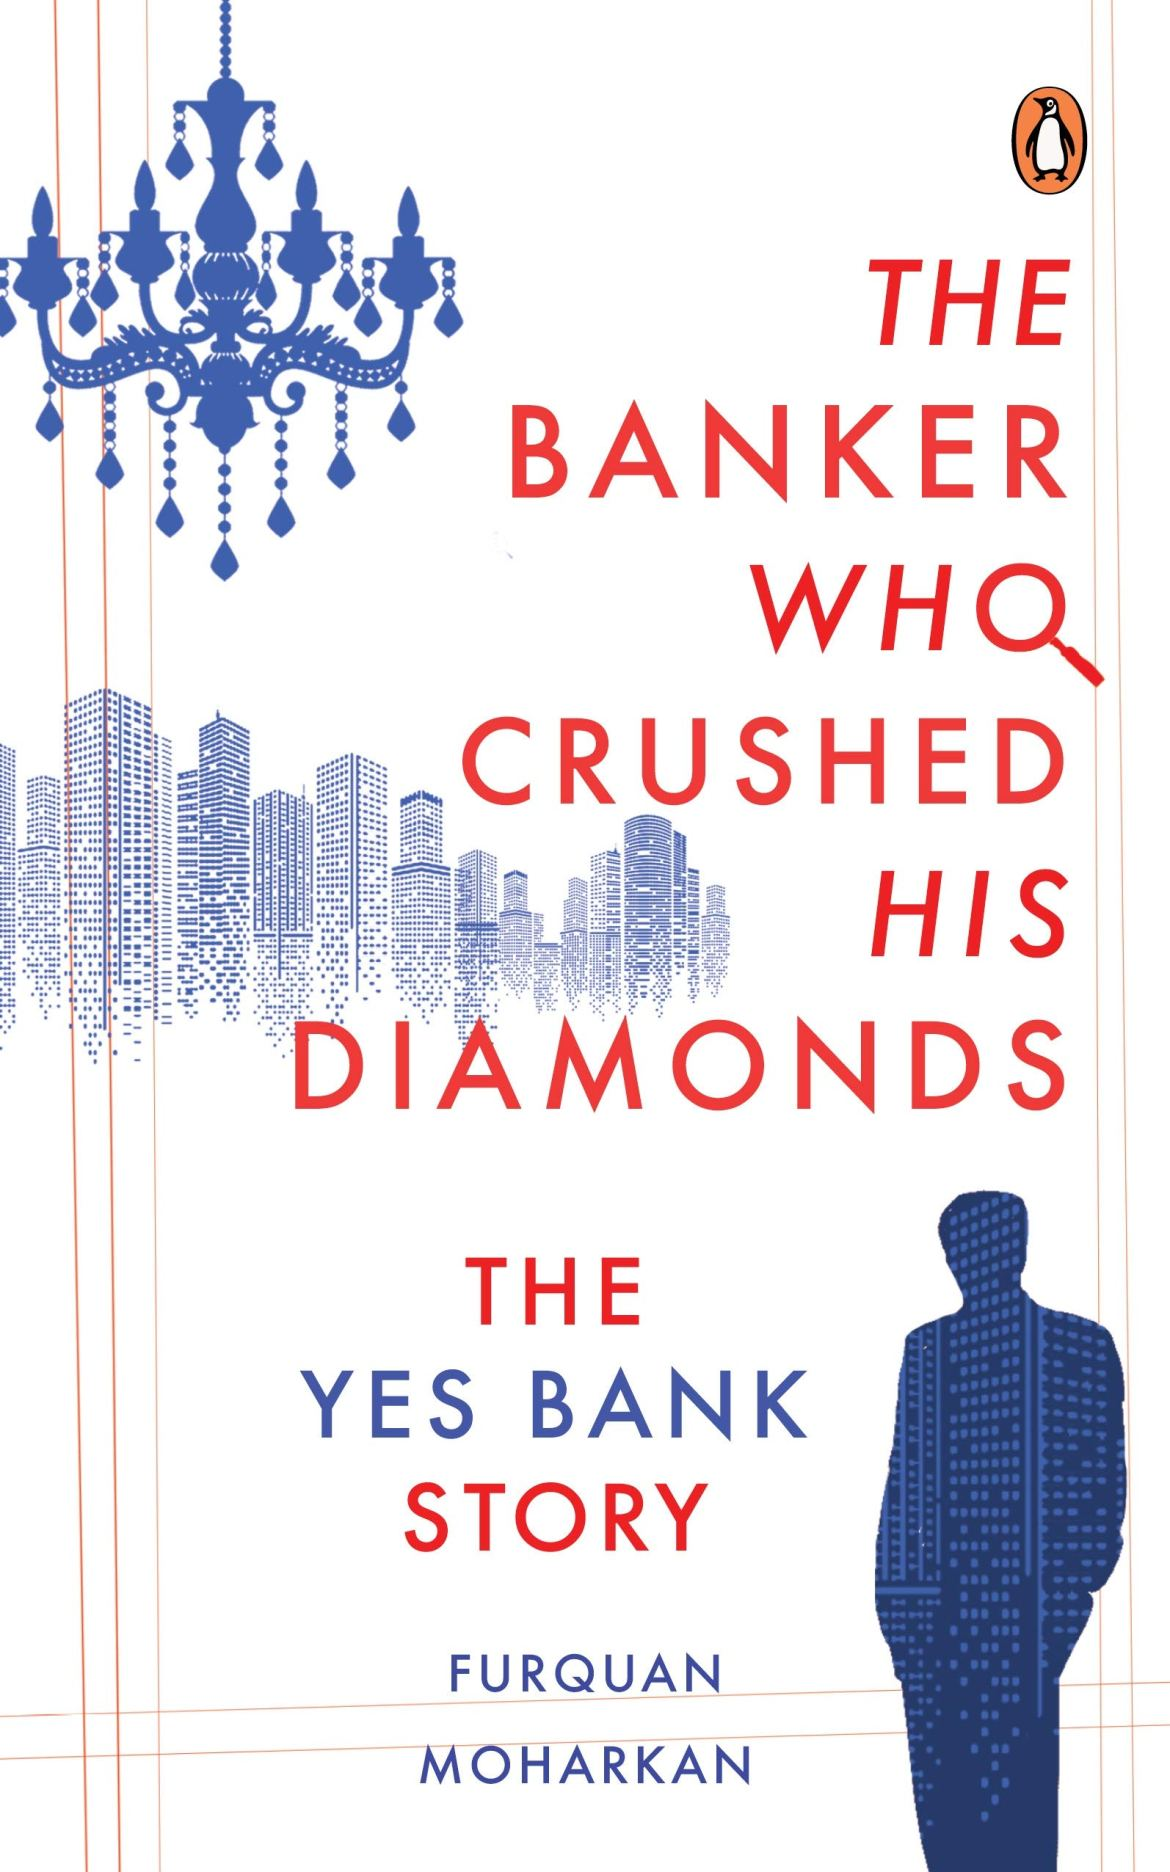 Buy The Banker Who Crushed His Diamonds: The Yes Bank Story Book Online at  Low Prices in India | The Banker Who Crushed His Diamonds: The Yes Bank  Story Reviews & Ratings -